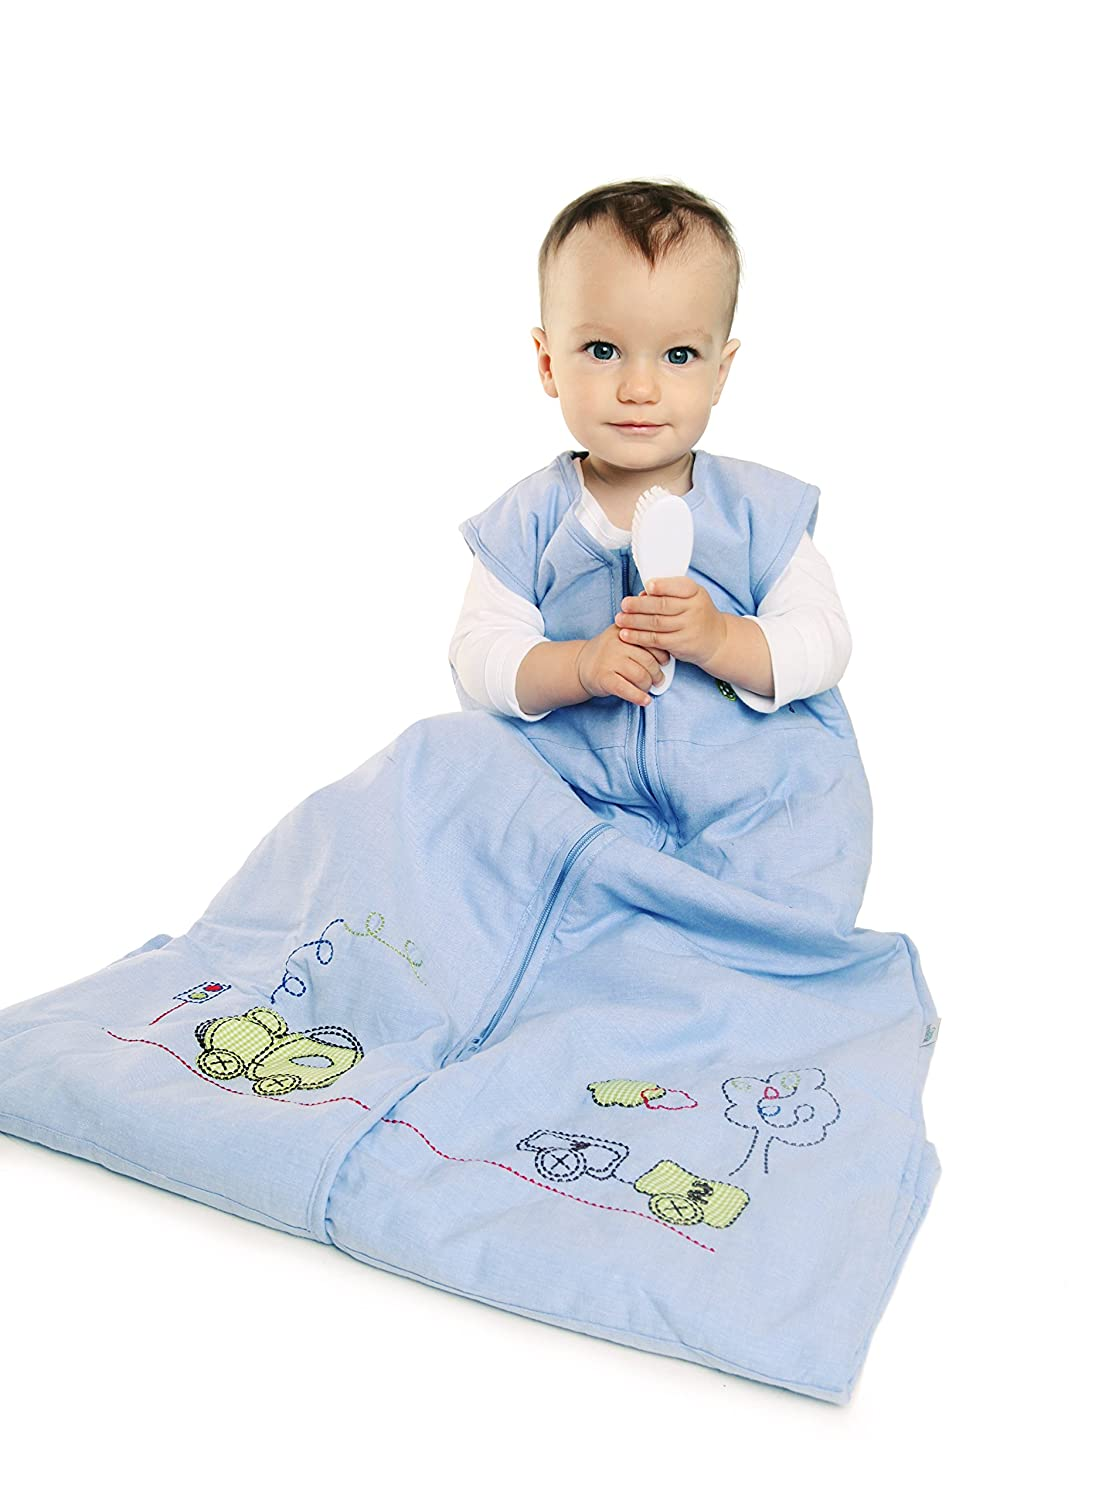 Slumbersac Toddler Summer Sleeping Bag 0.5 Tog - Train, 3-6 years: Amazon.es: Ropa y accesorios